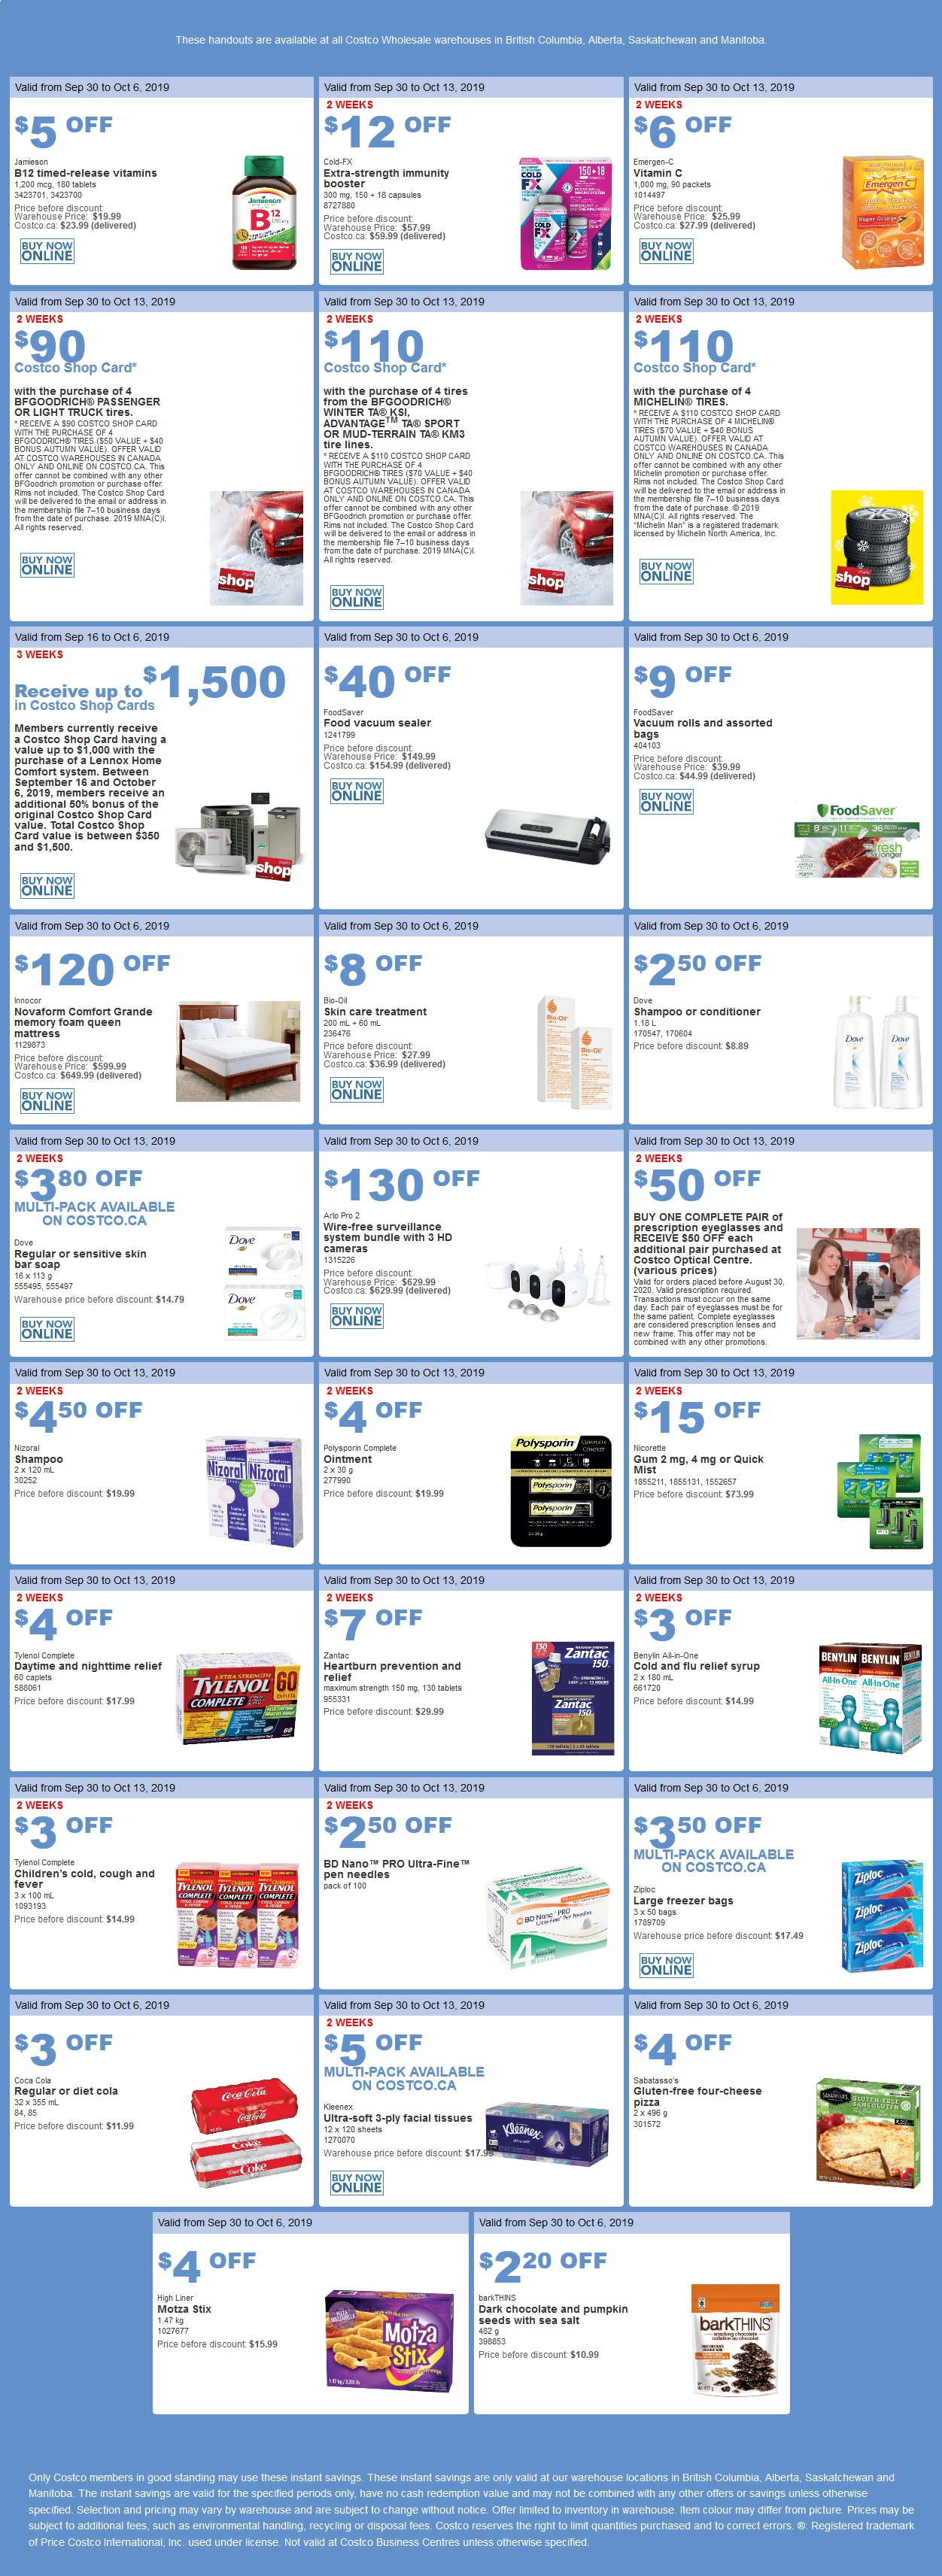 Costco Flyer for Sep 30 - Oct 6, 2019 for BC, AB, SK, MB